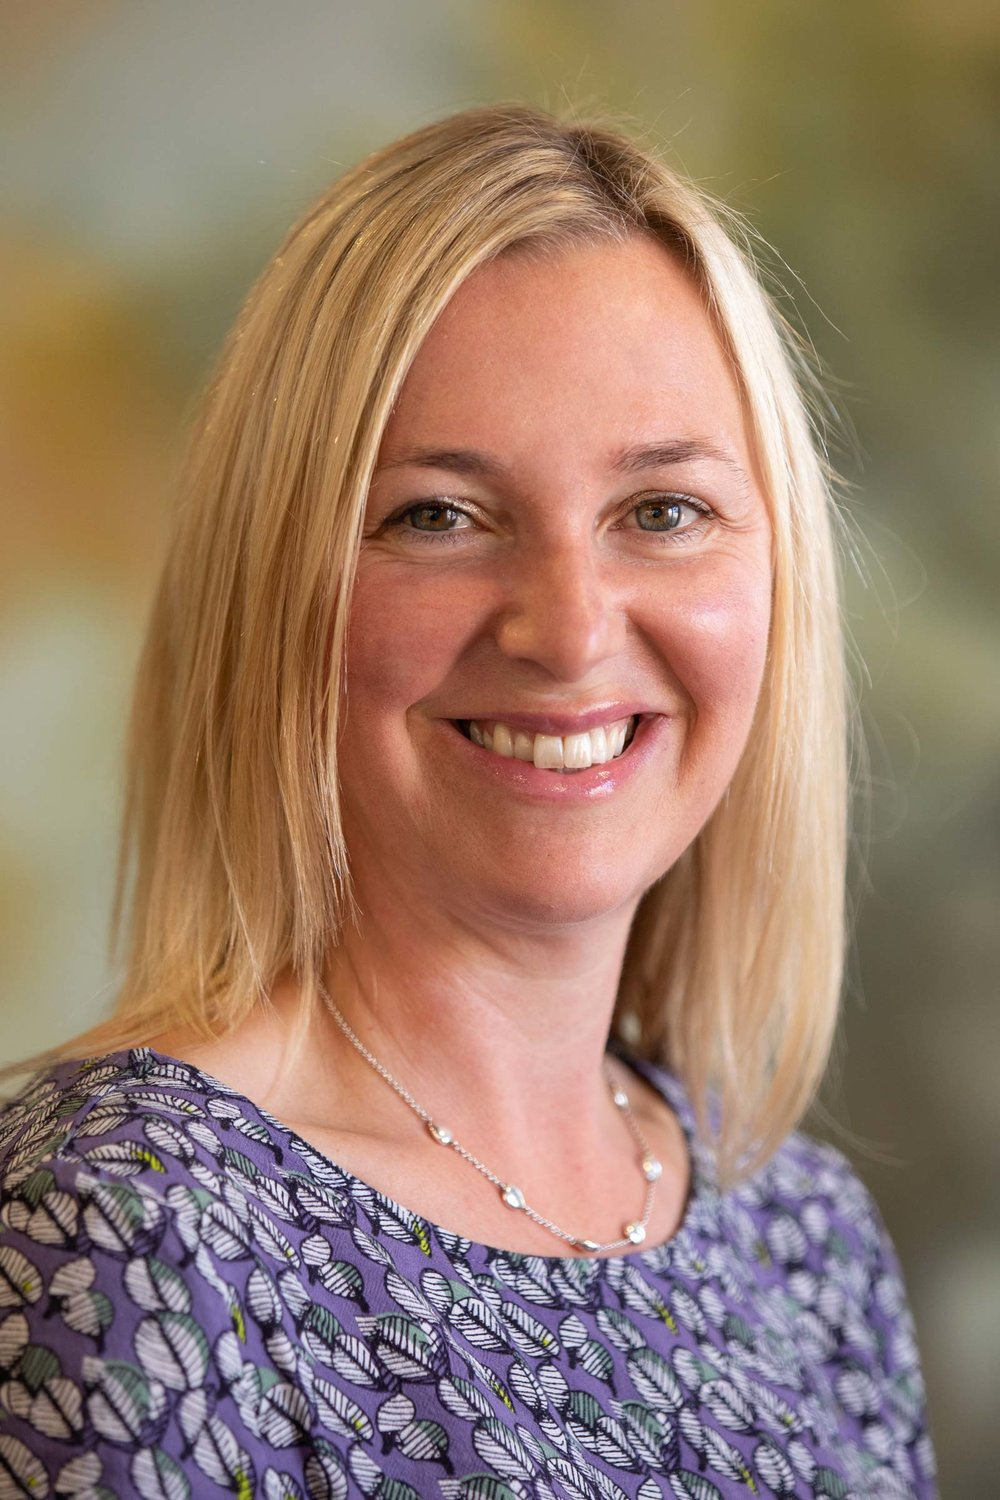 Nicole HorsteadHypnosis and EFT Practitioner - View Profile